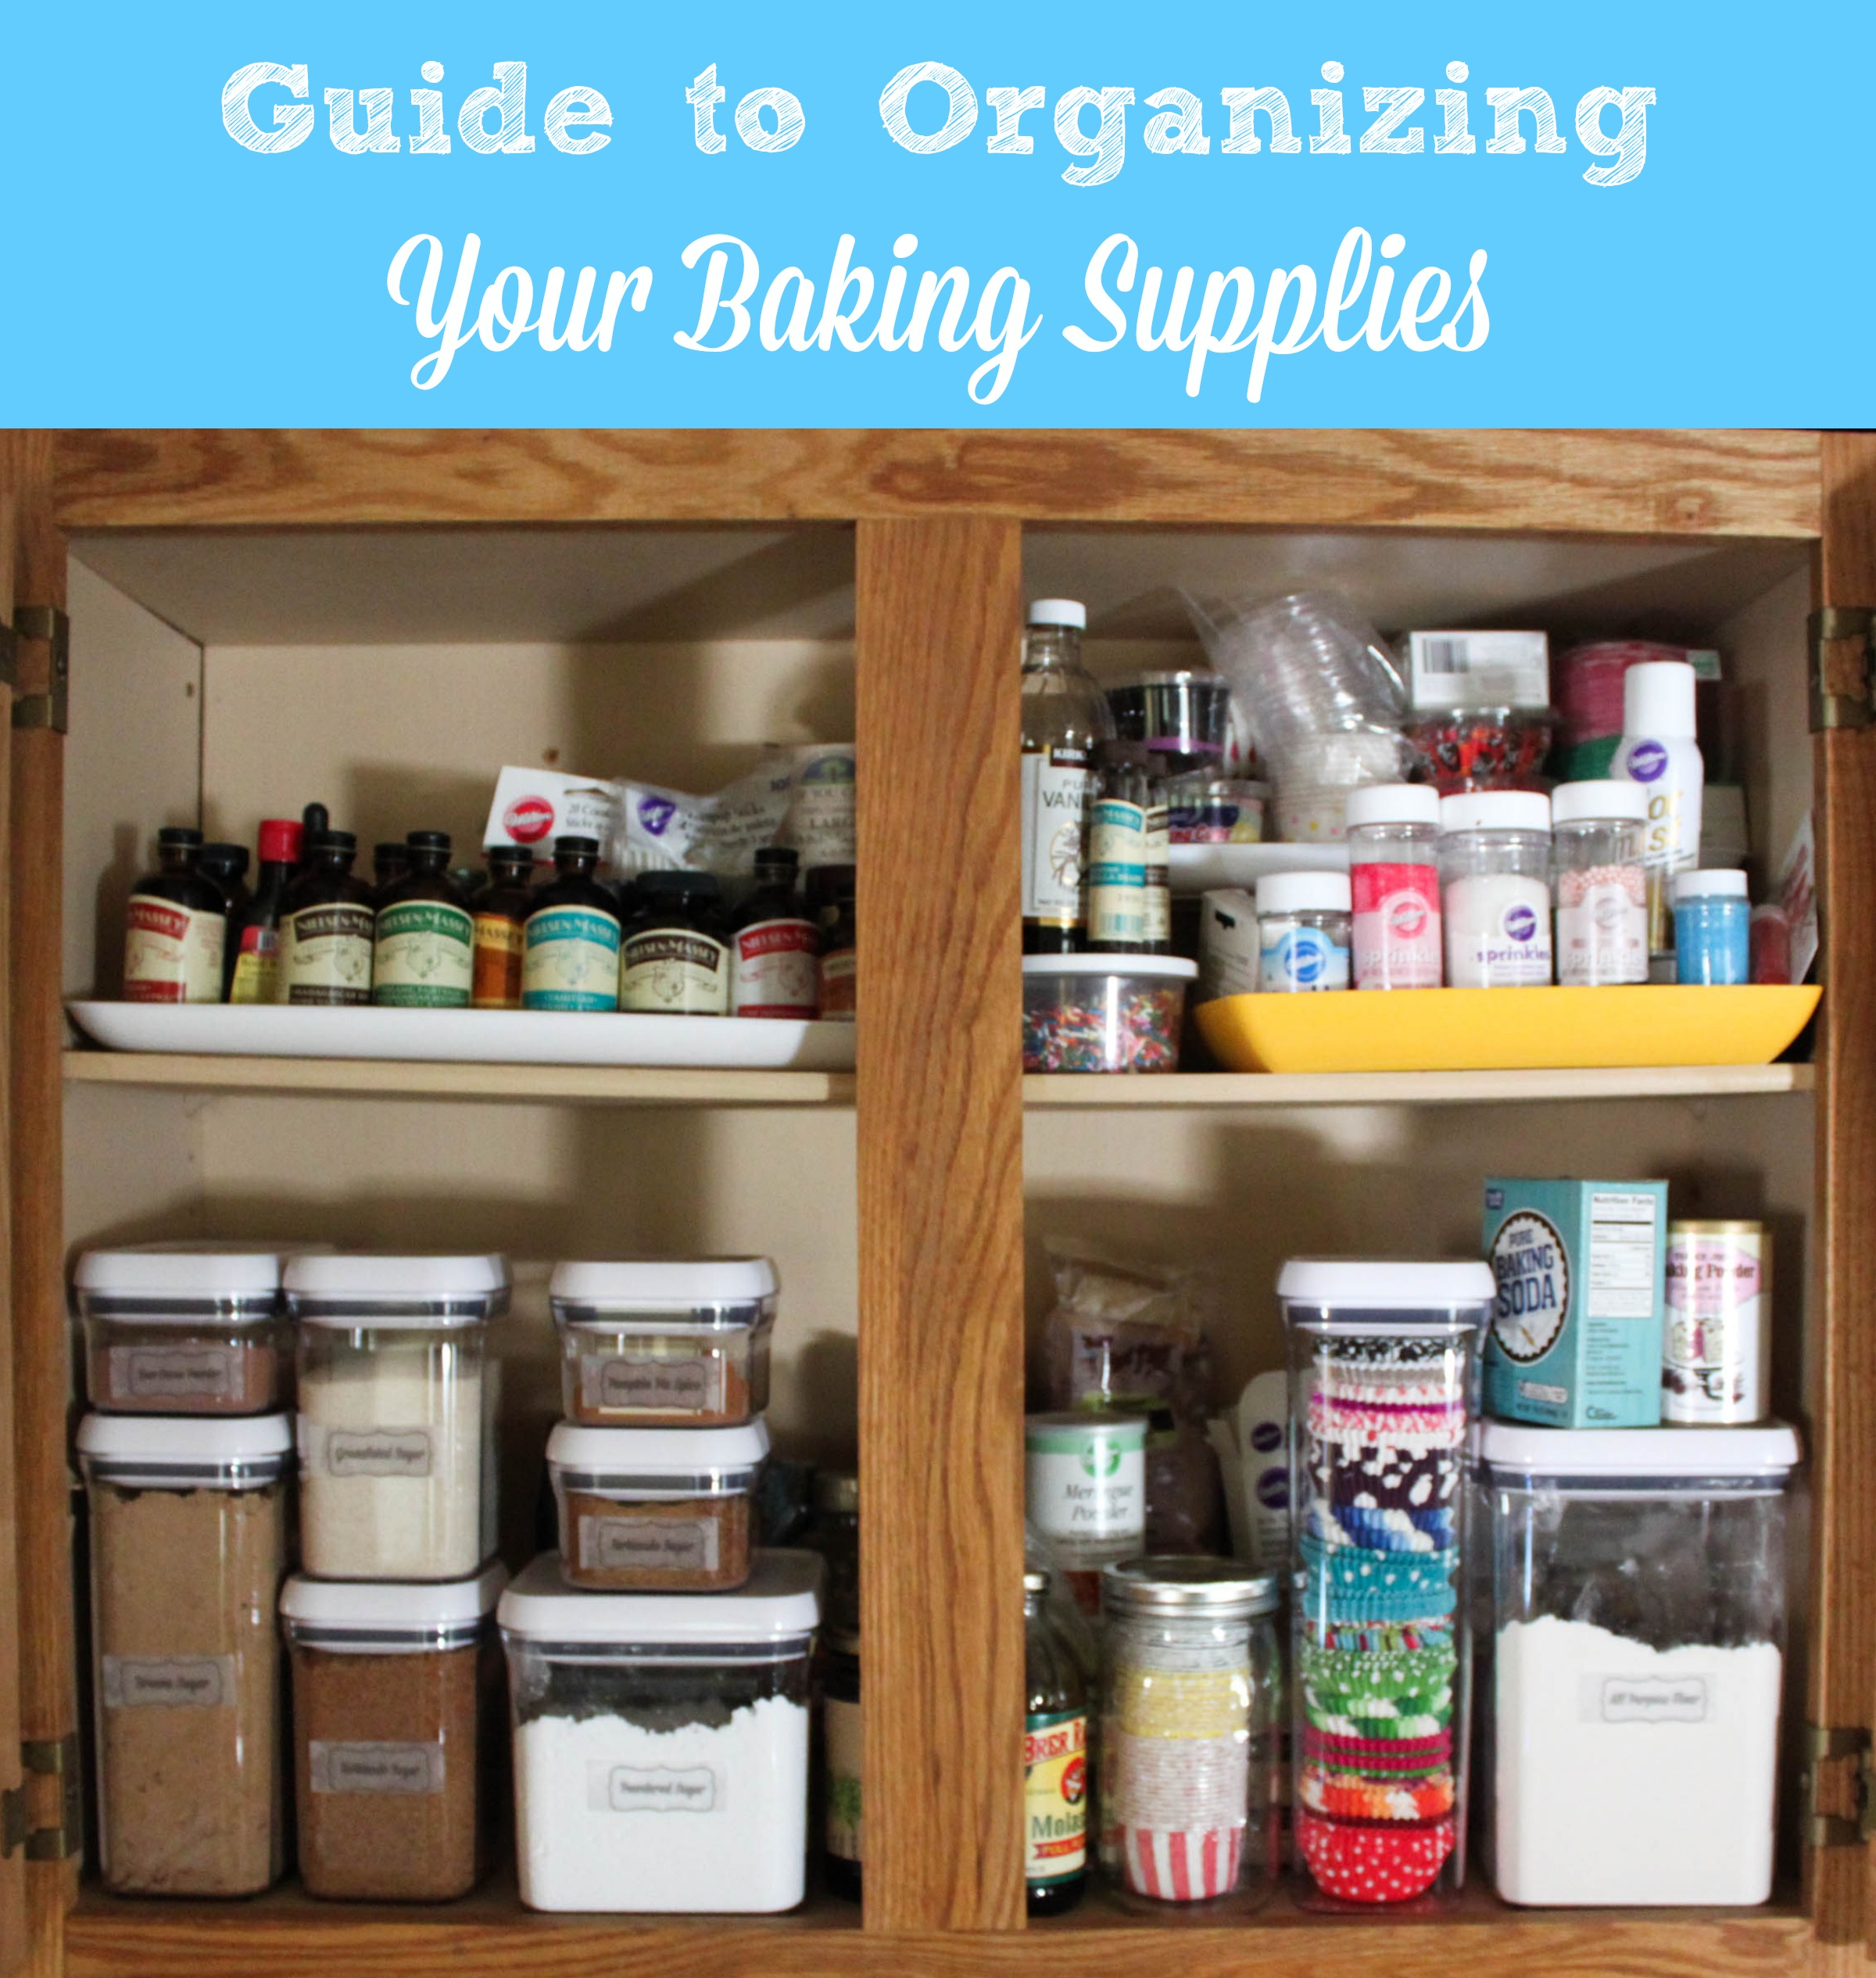 Learn how to organize your baking supplies